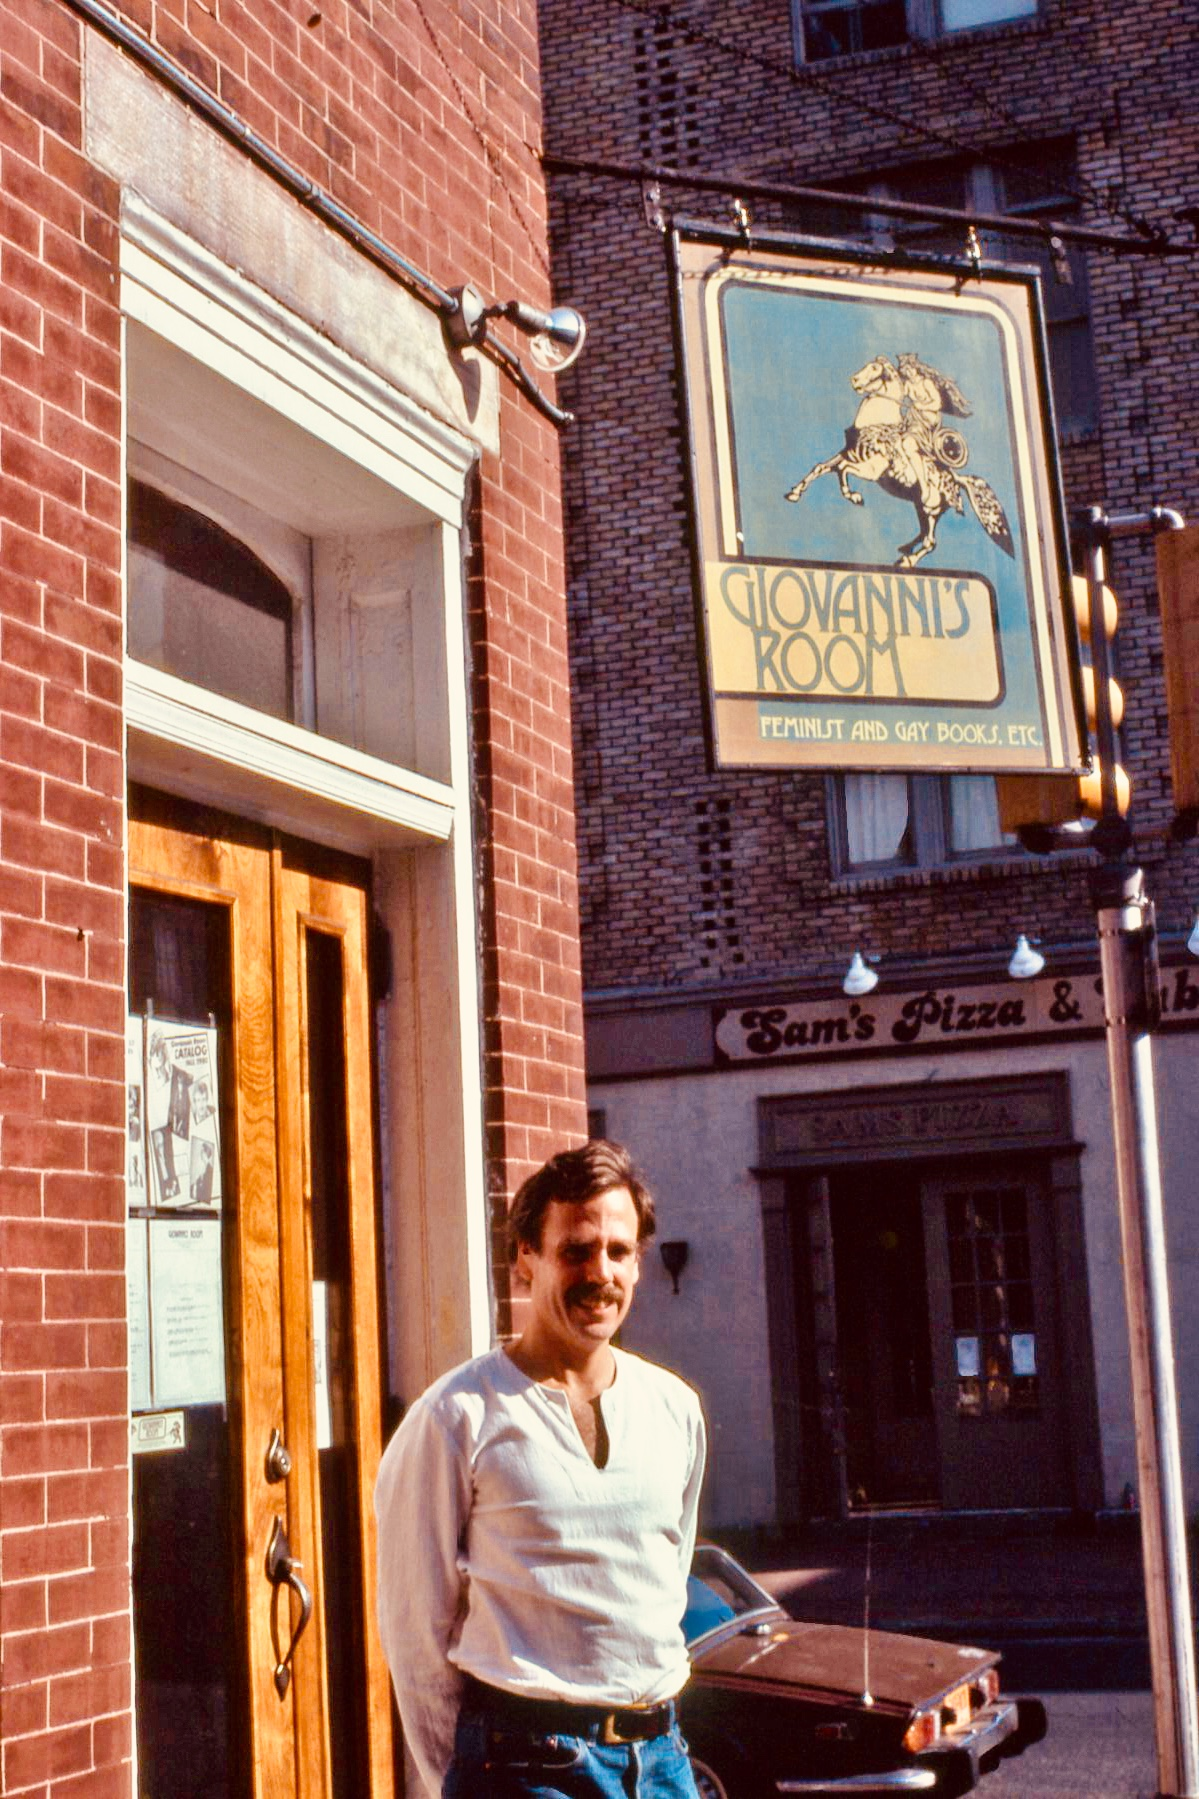 Ed Hermance standing in front of Giovanni's Room in the 1980s.